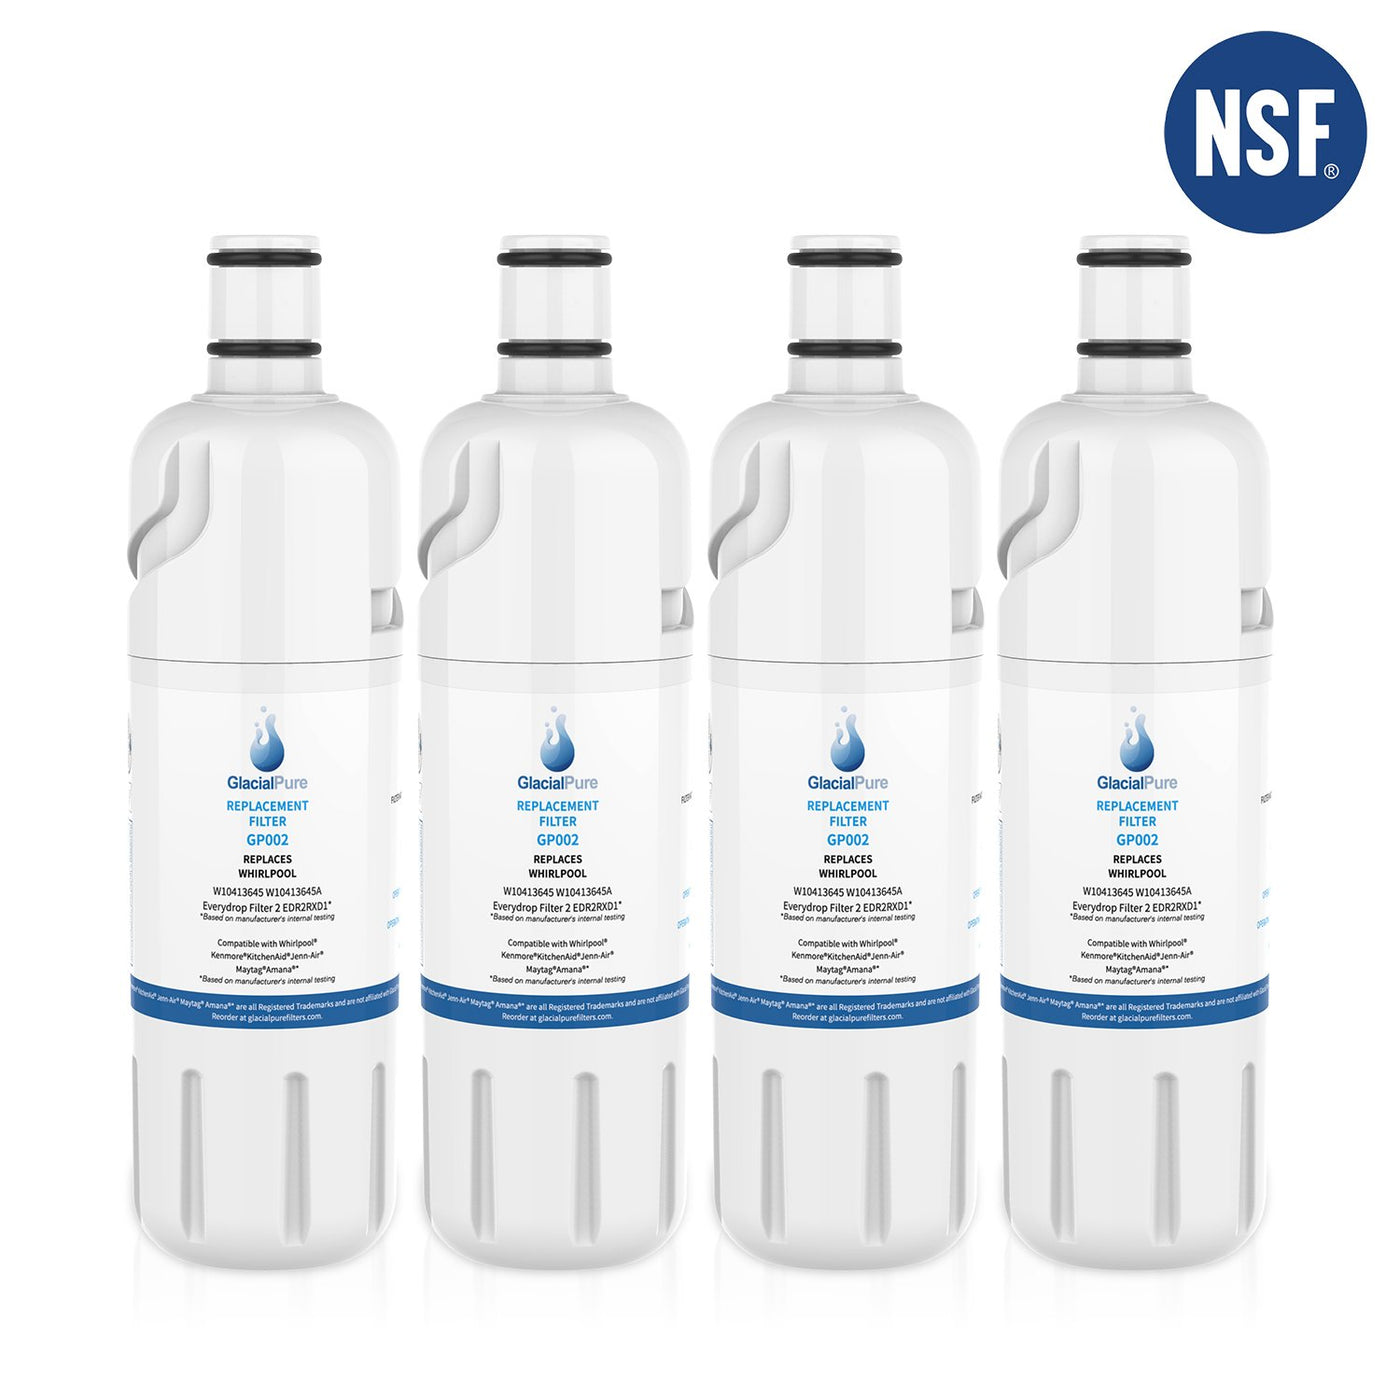 GlacialPure Refrigerator Water Filter for Whirlpool Filter 2 EDR2RXD1 9082 W10413645A 4 Packs